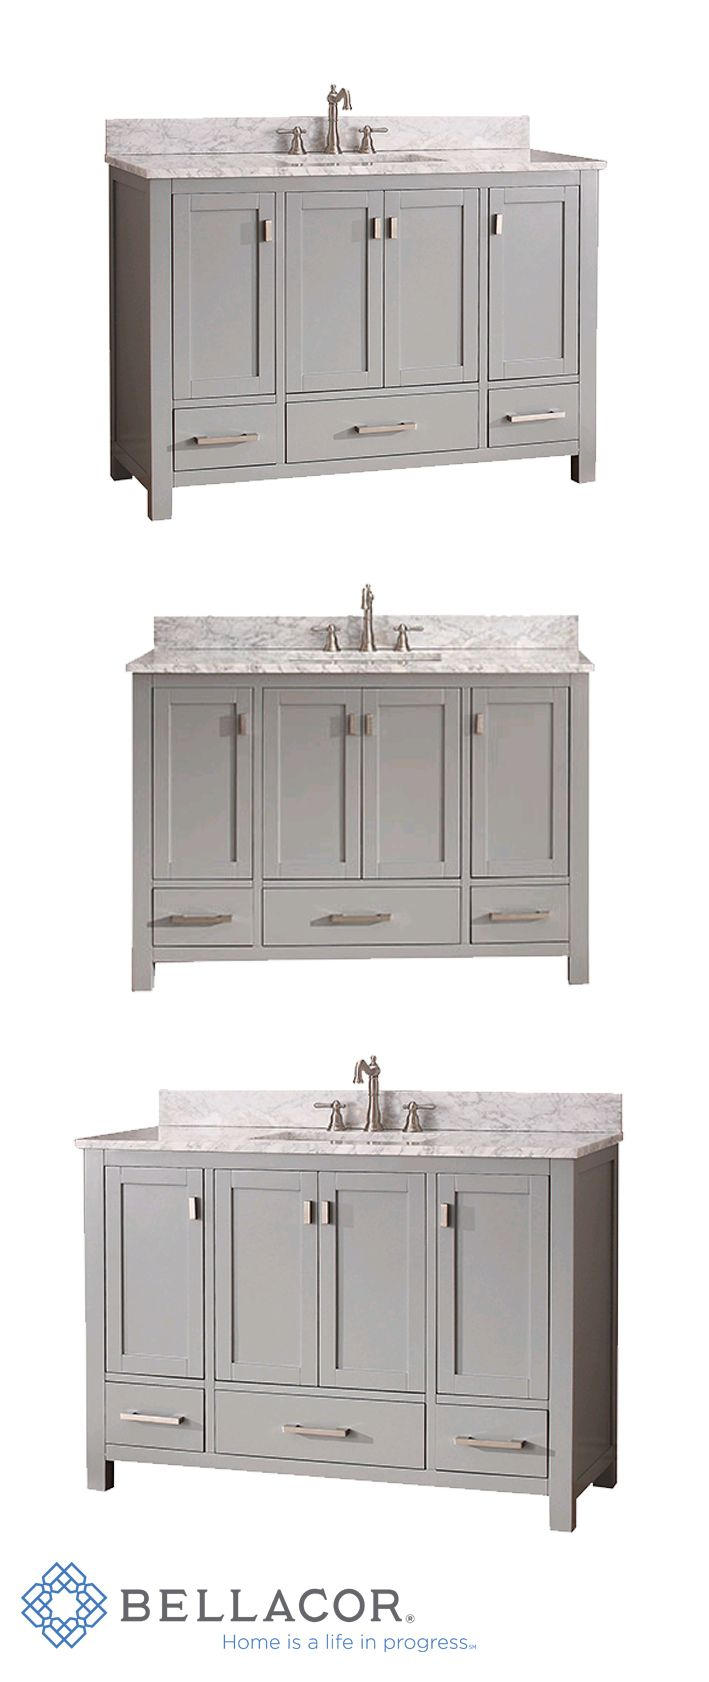 Avanity Modero Chilled Gray 48 Inch Vanity Combo With White Carrera Marble Top Simple Brushed